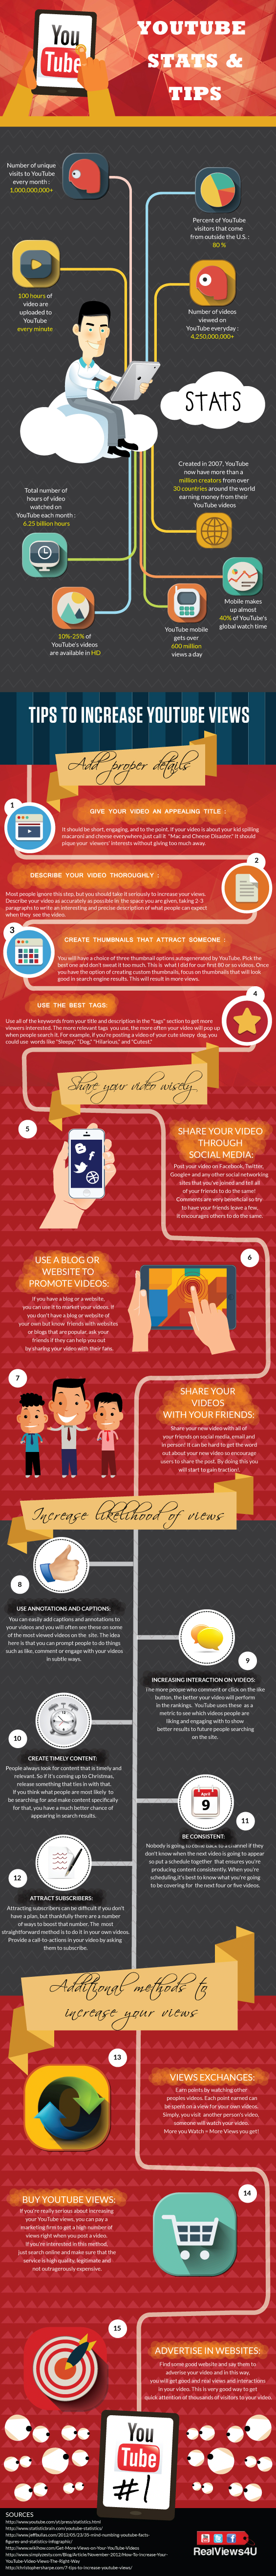 15 Ways to Increase YouTube Views